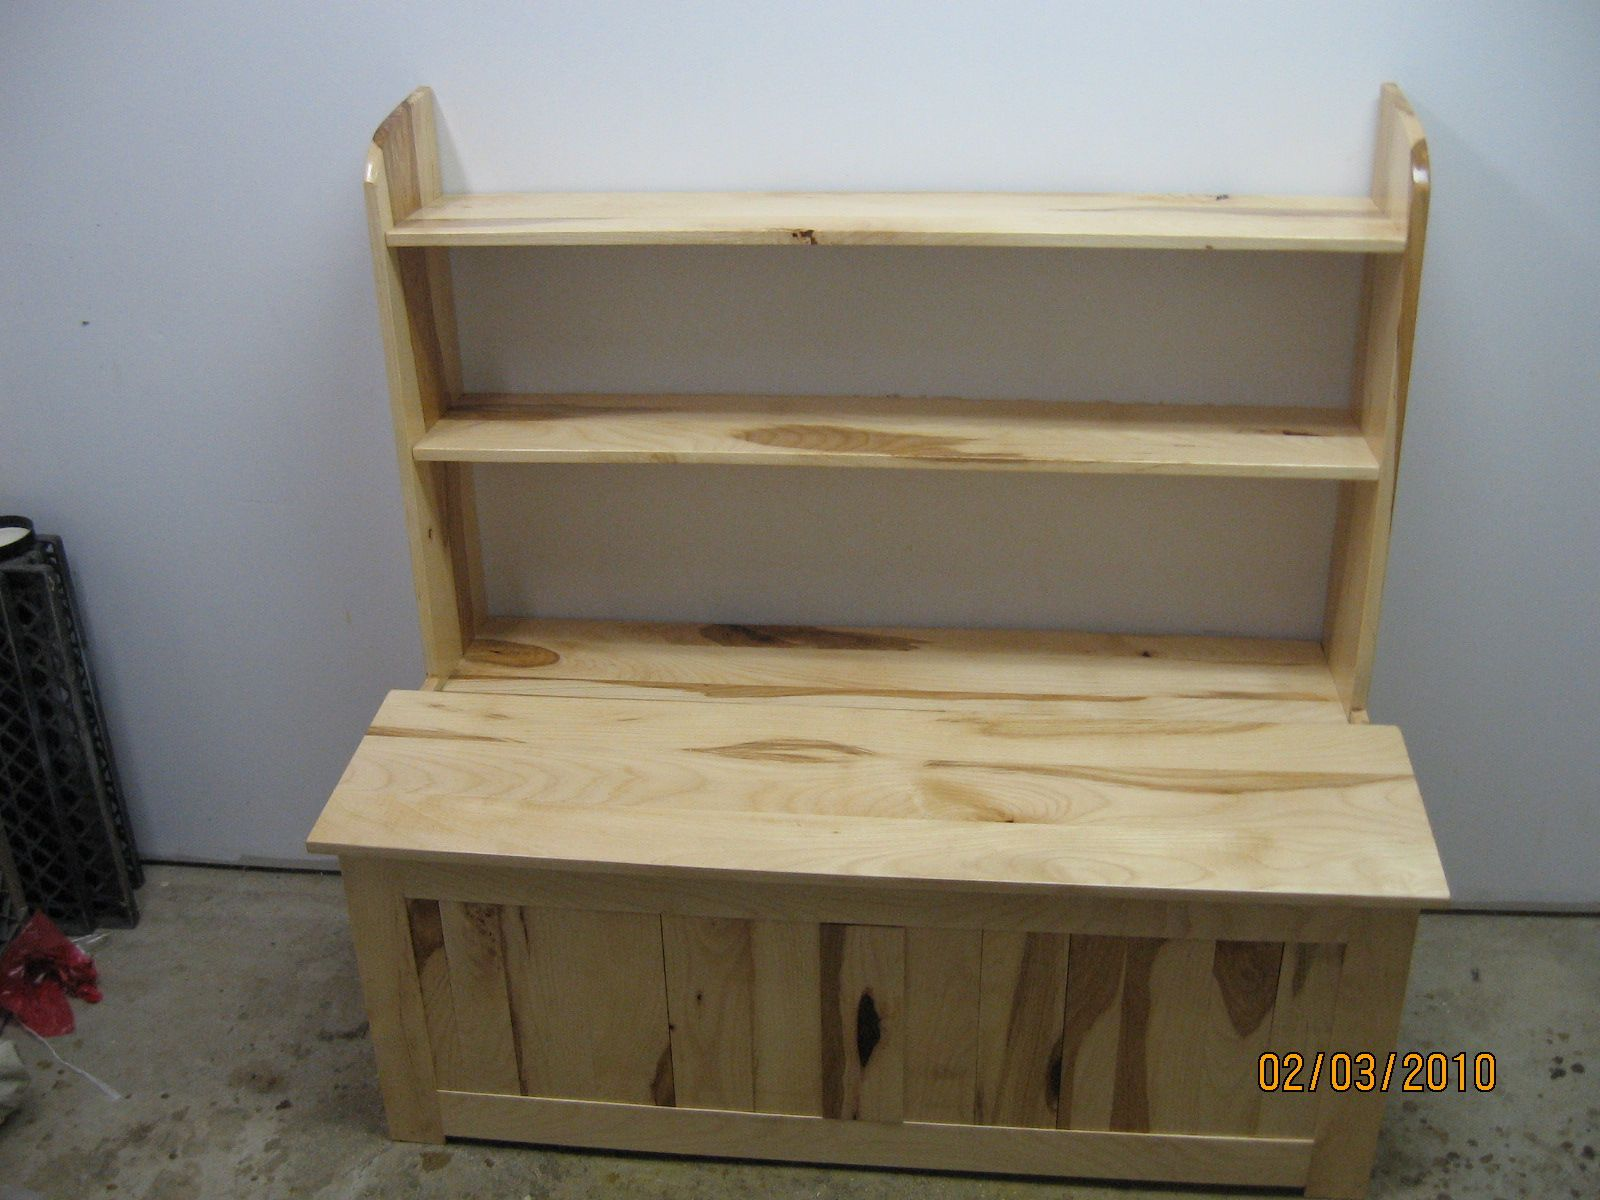 Pin By Mark Coleman On Woodworking Toy Box With Shelf Bookshelves Diy Wooden Toy Boxes